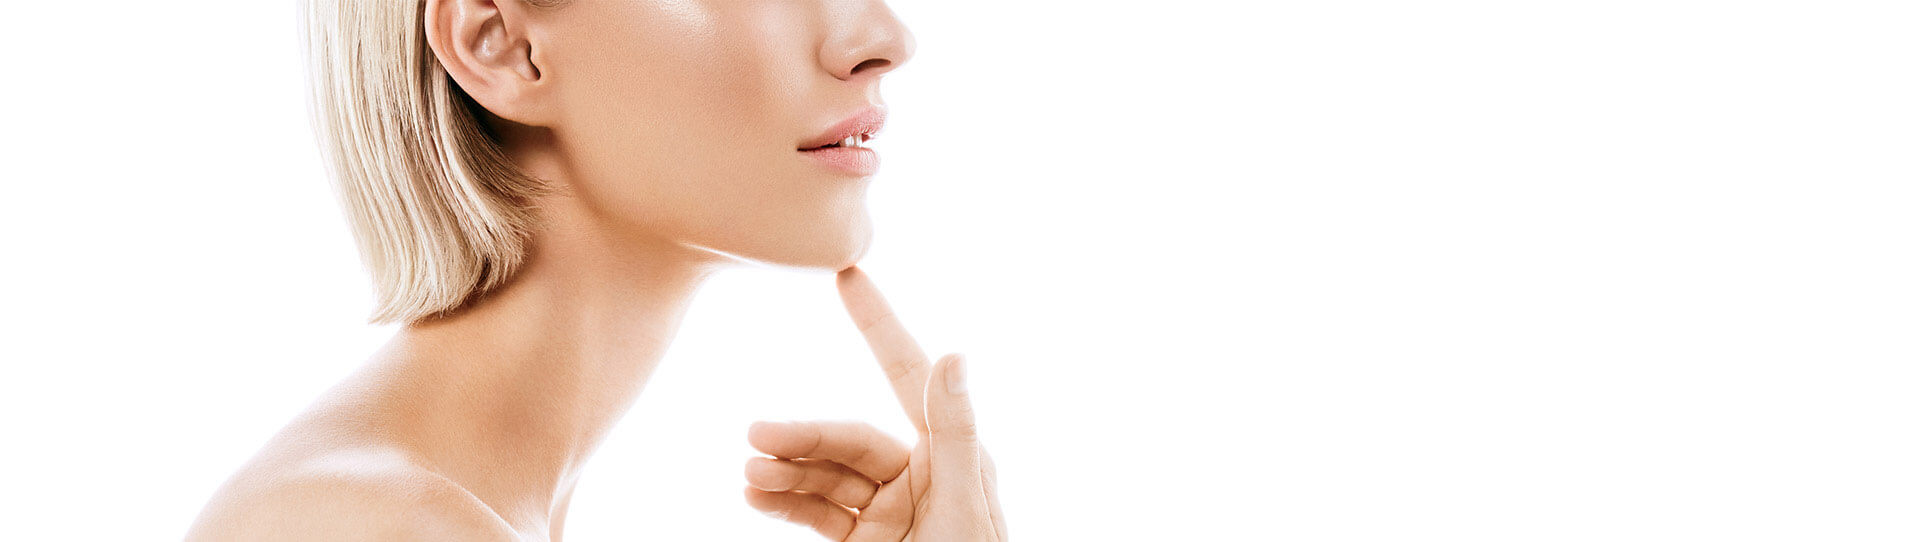 permanent double chin removal